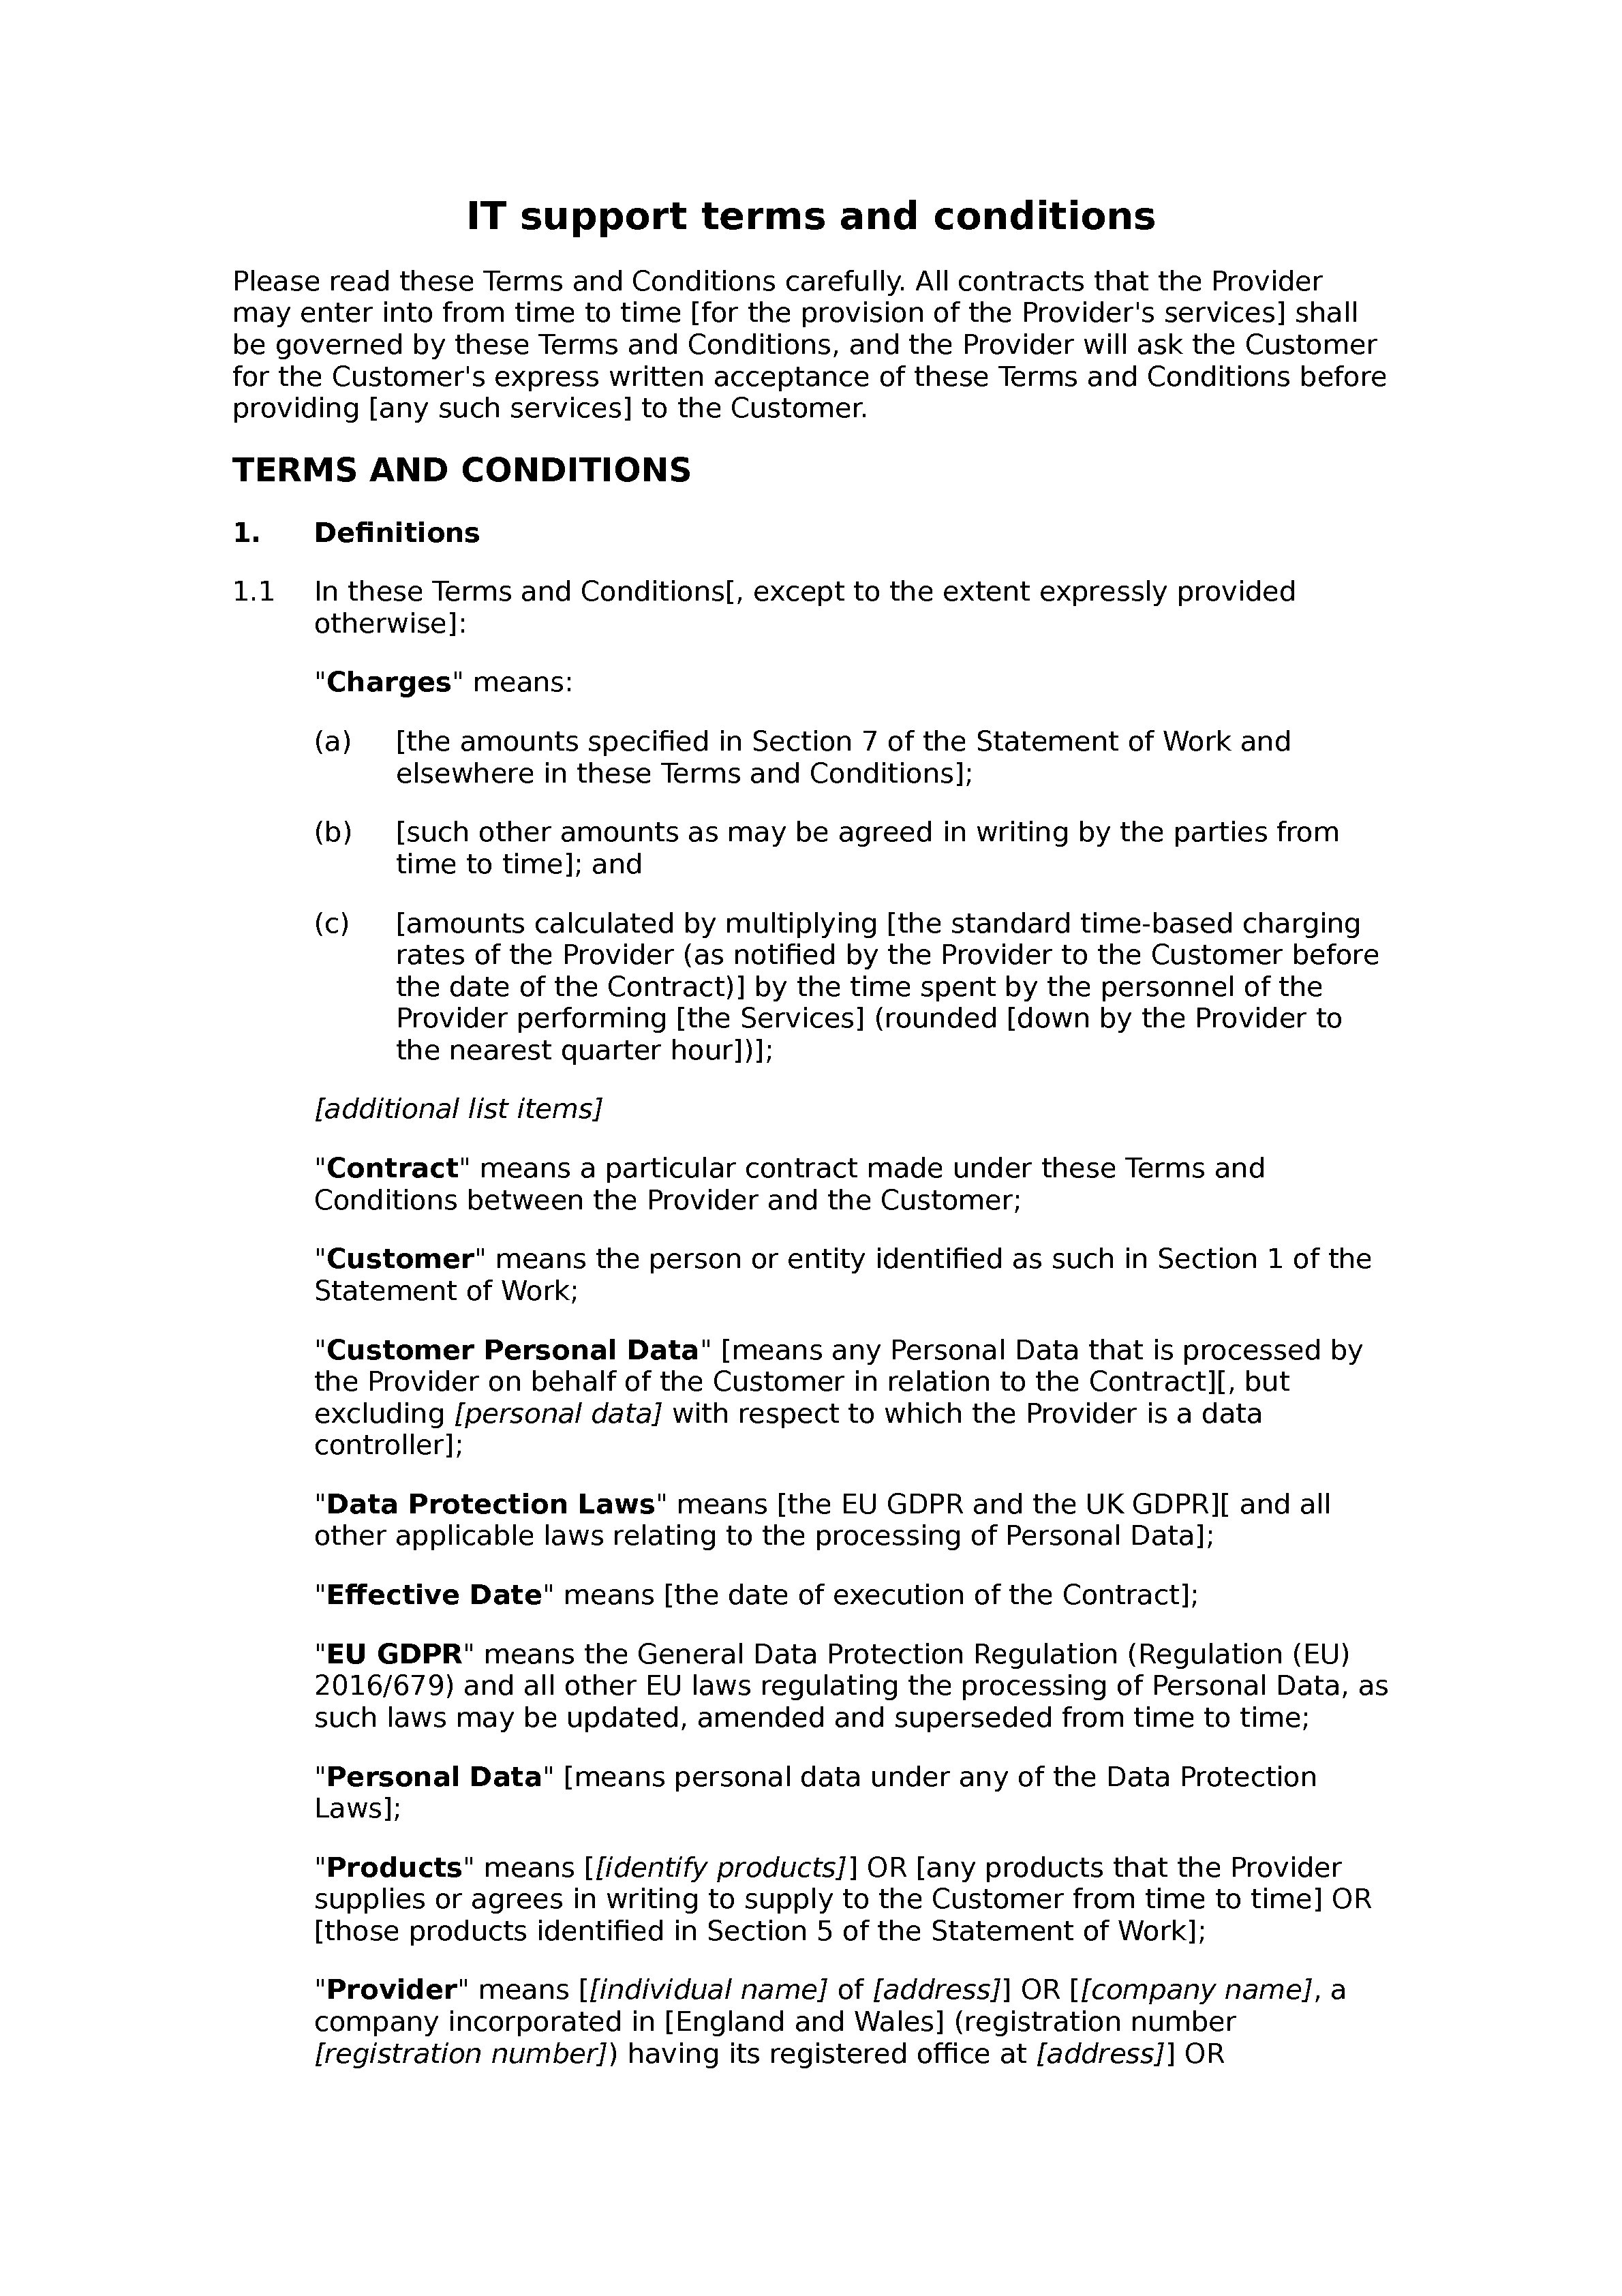 IT support terms and conditions (basic) document preview